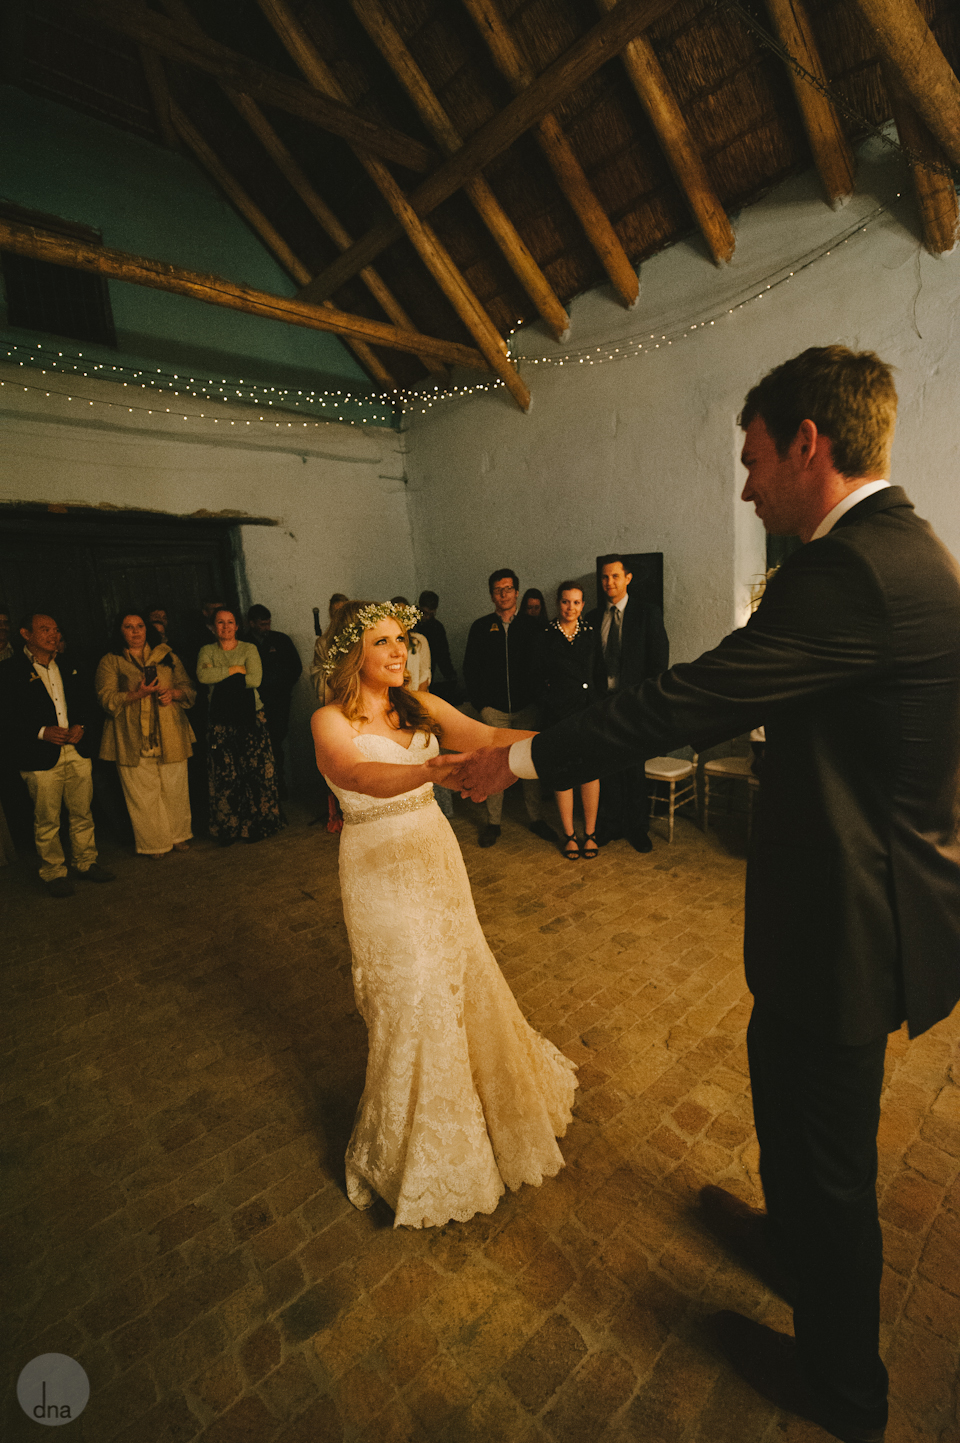 Amy and Marnus wedding Hawksmore House Stellenbosch South Africa shot by dna photographers_-1115.jpg